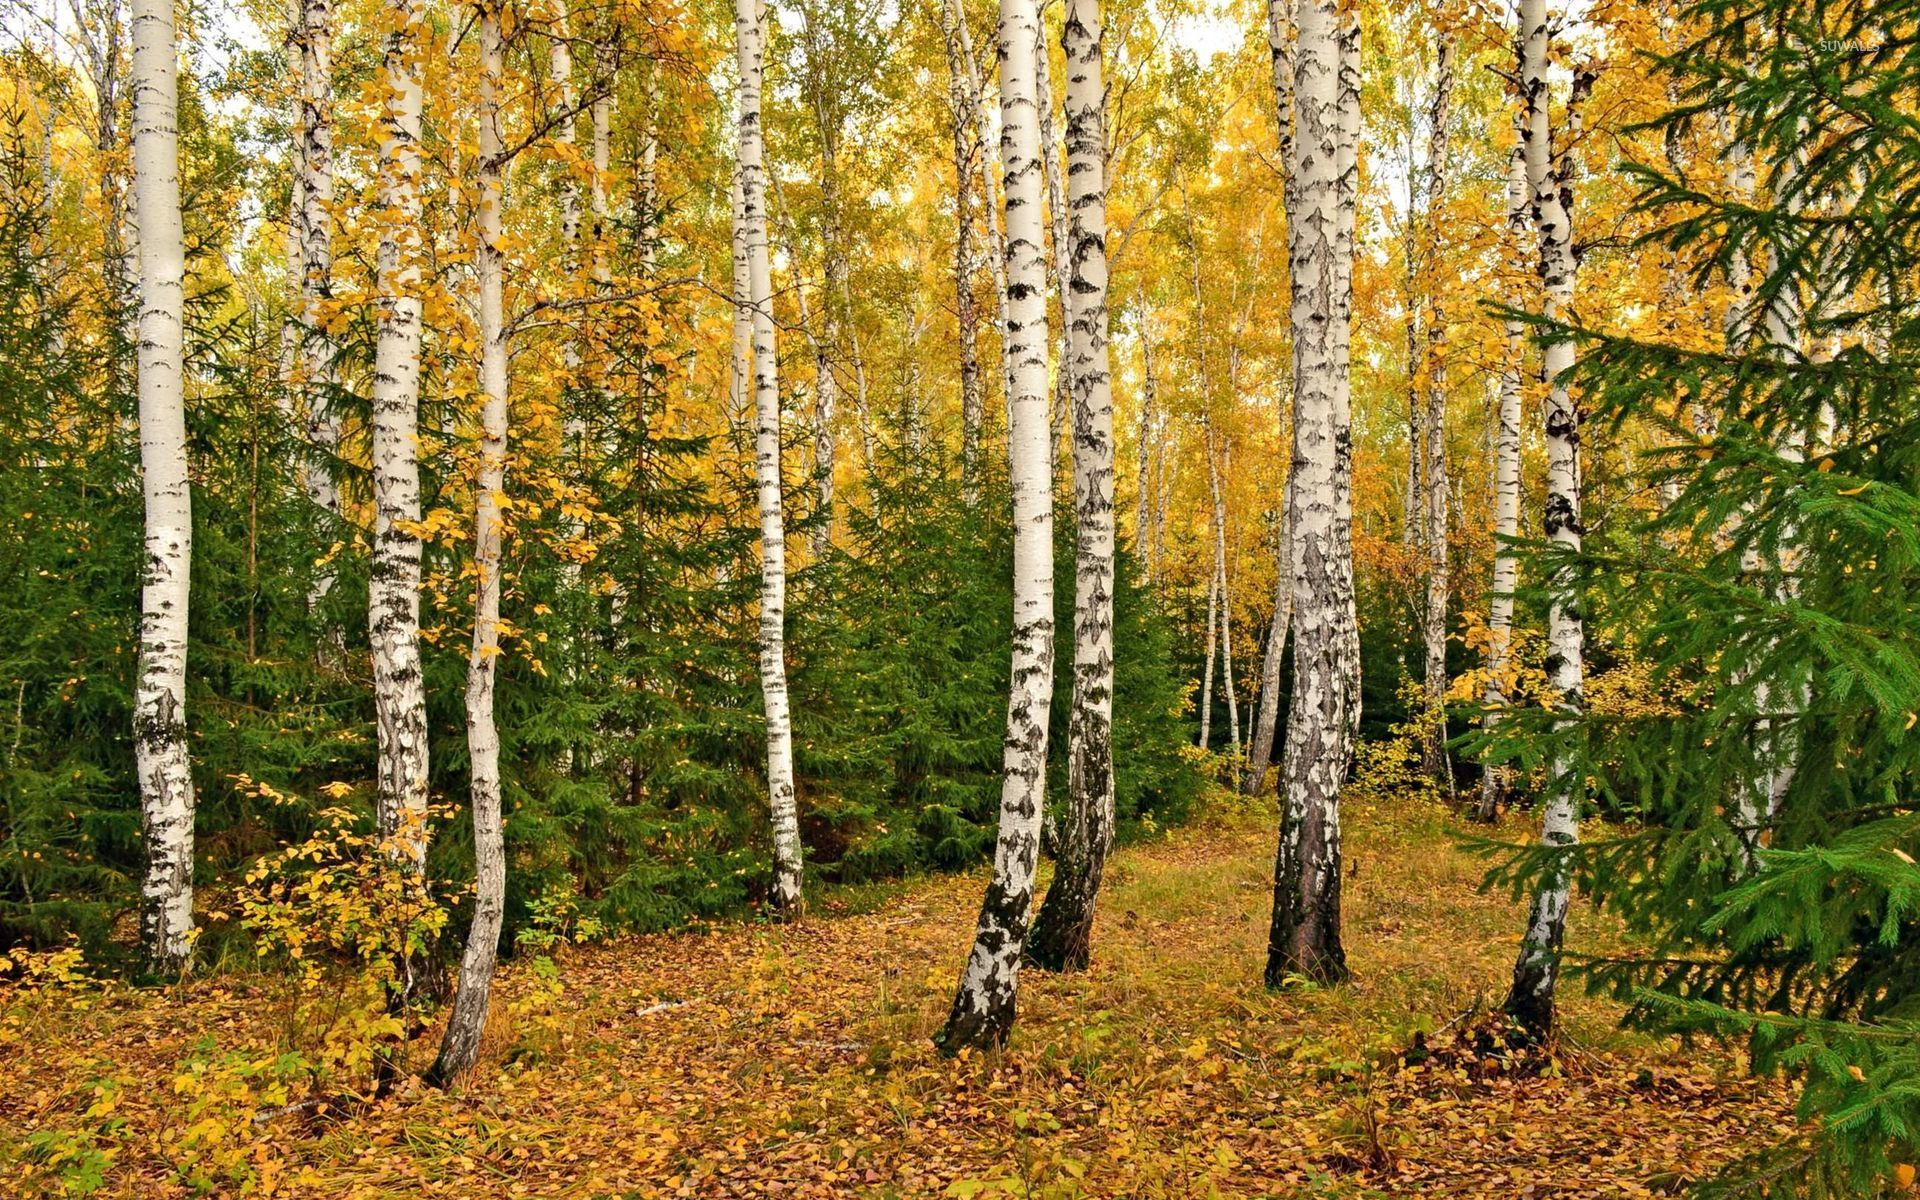 Fall In Vermont Wallpaper Autumn Birch Forest 2 Wallpaper Nature Wallpapers 46236